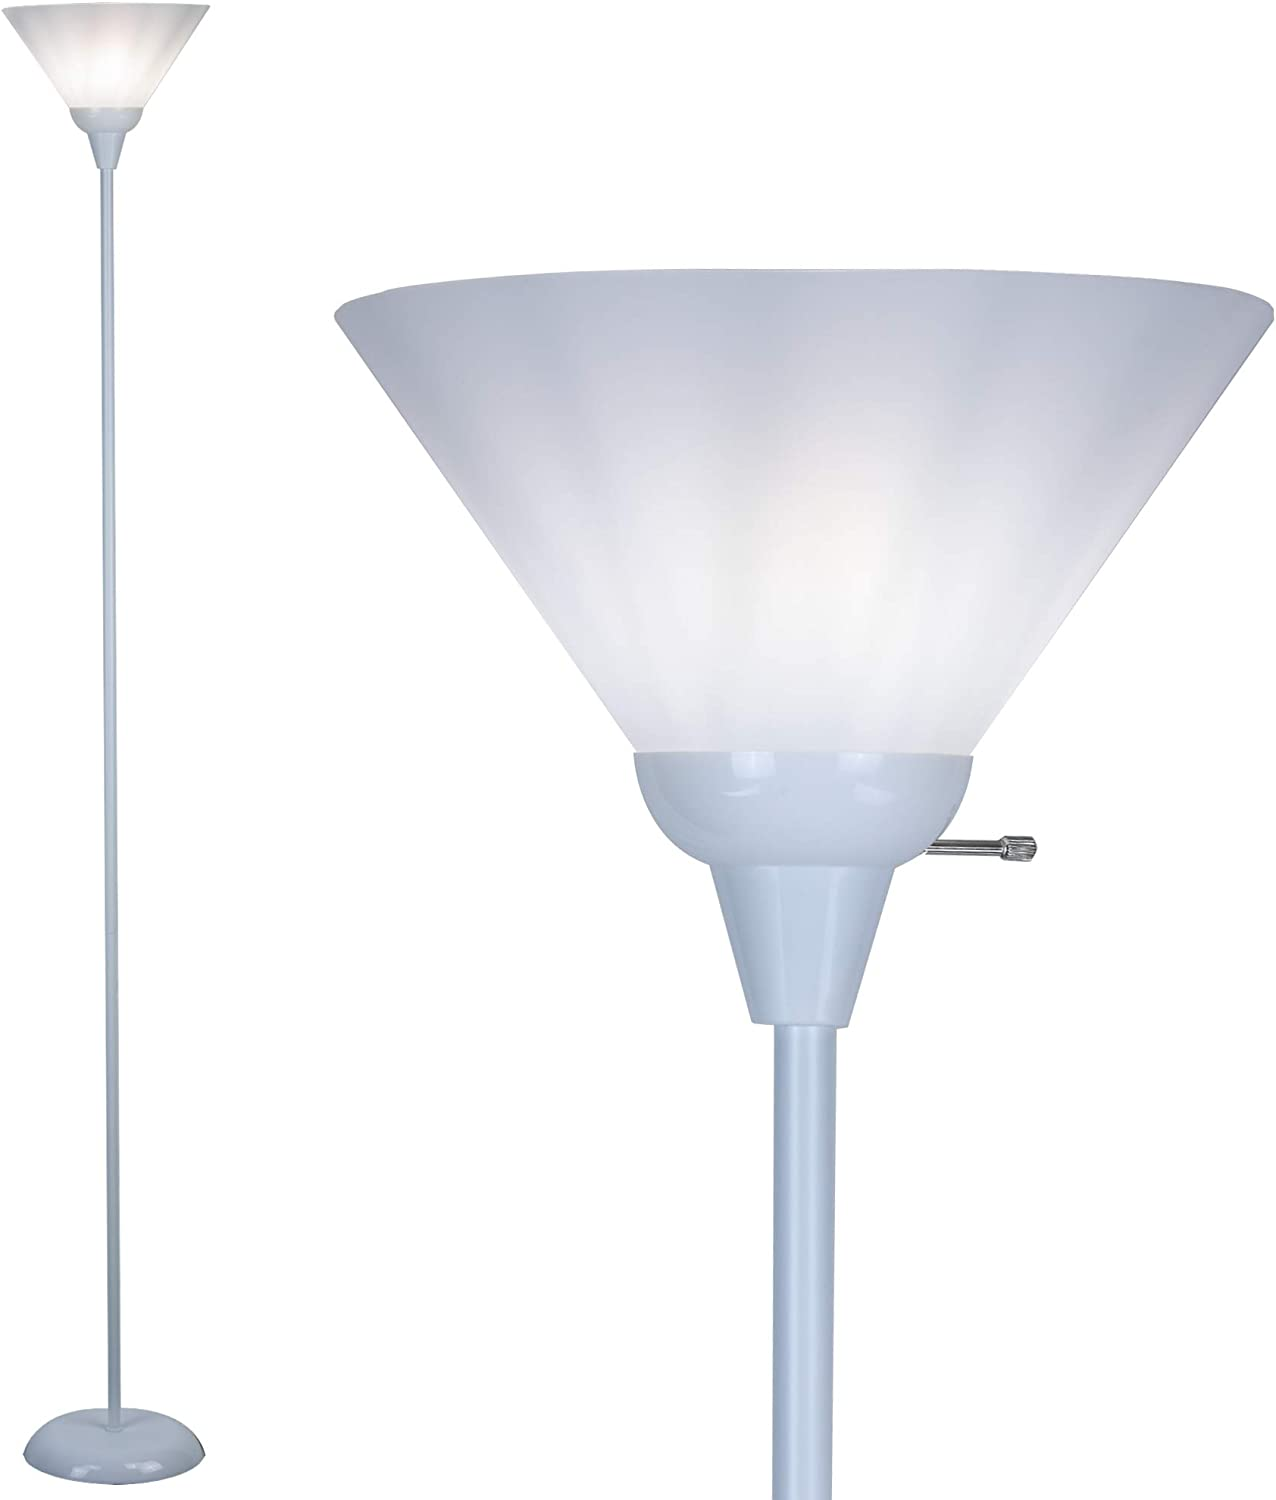 Floor Lamp by Light Accents - Mary Floor Lamp for Living Rooms - Standing lamp - Pole Light - Torchiere Floor Lamp - Bedroom Floor Lamp - Torch Lamps Bright Reading Light with White Shade (White)